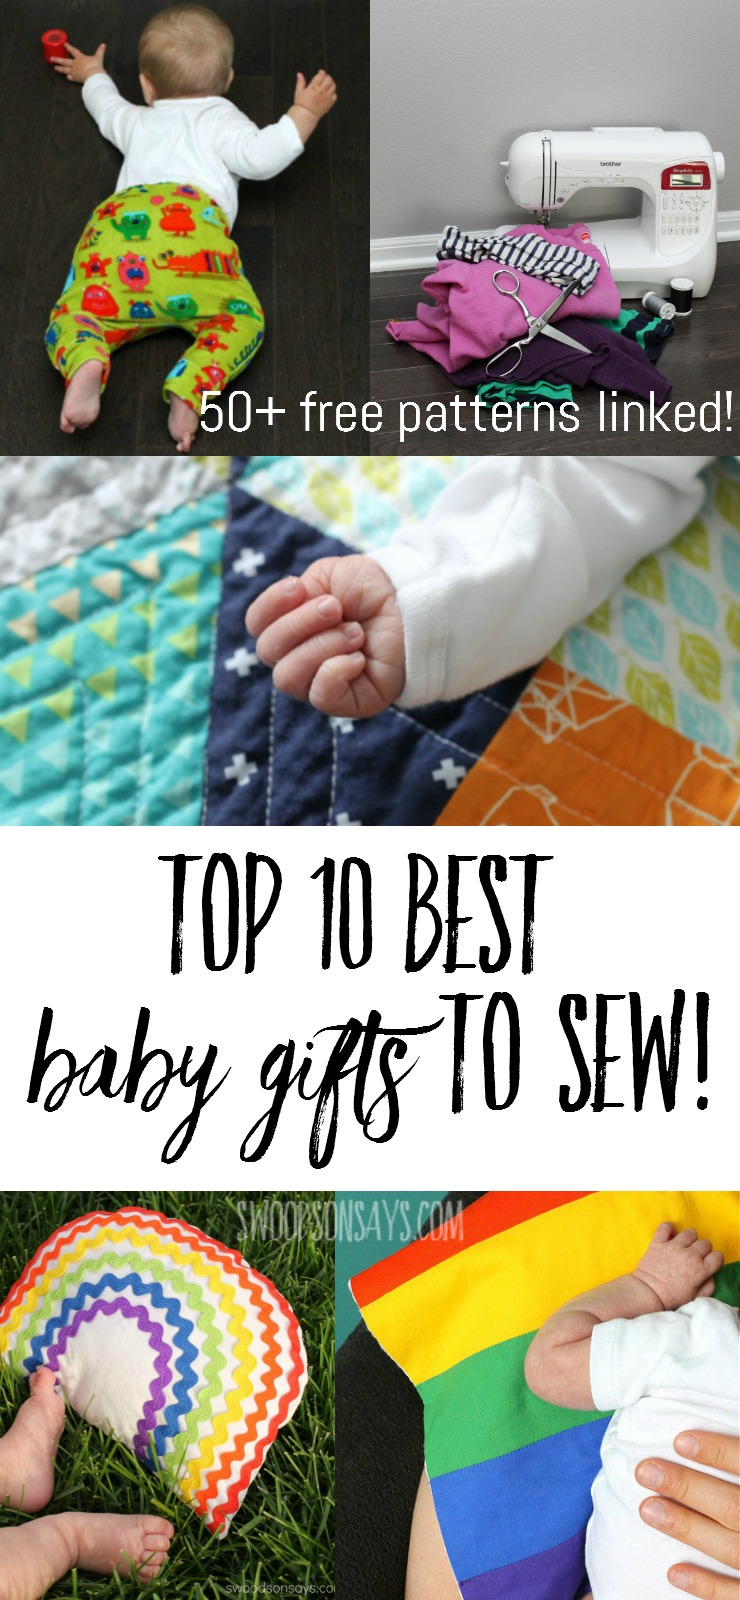 Top 10 best baby gifts to sew! There are 50+ links to free baby sewing patterns and tutorials for the best handmade baby gifts. Pair one with something practical that you loved as a parent for the best baby shower gift idea ever!